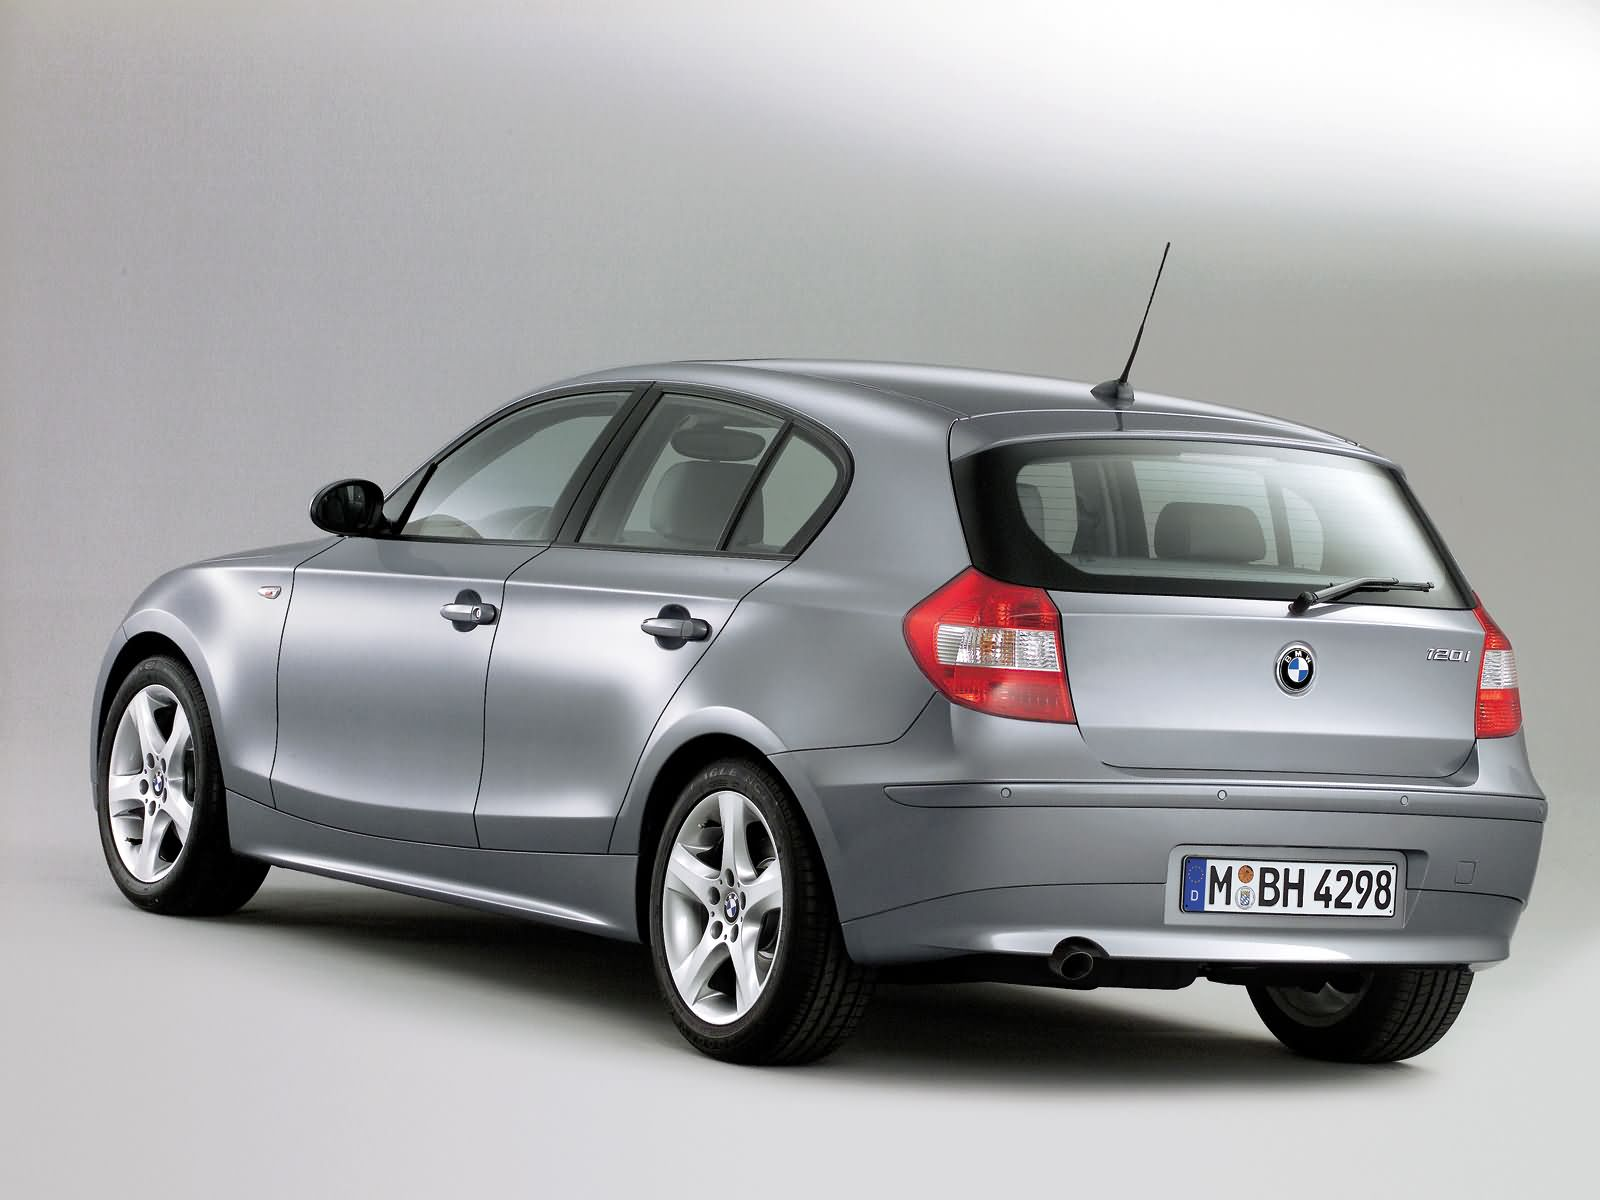 bmw 1 series 5 door e87 picture 15023 bmw photo gallery. Black Bedroom Furniture Sets. Home Design Ideas